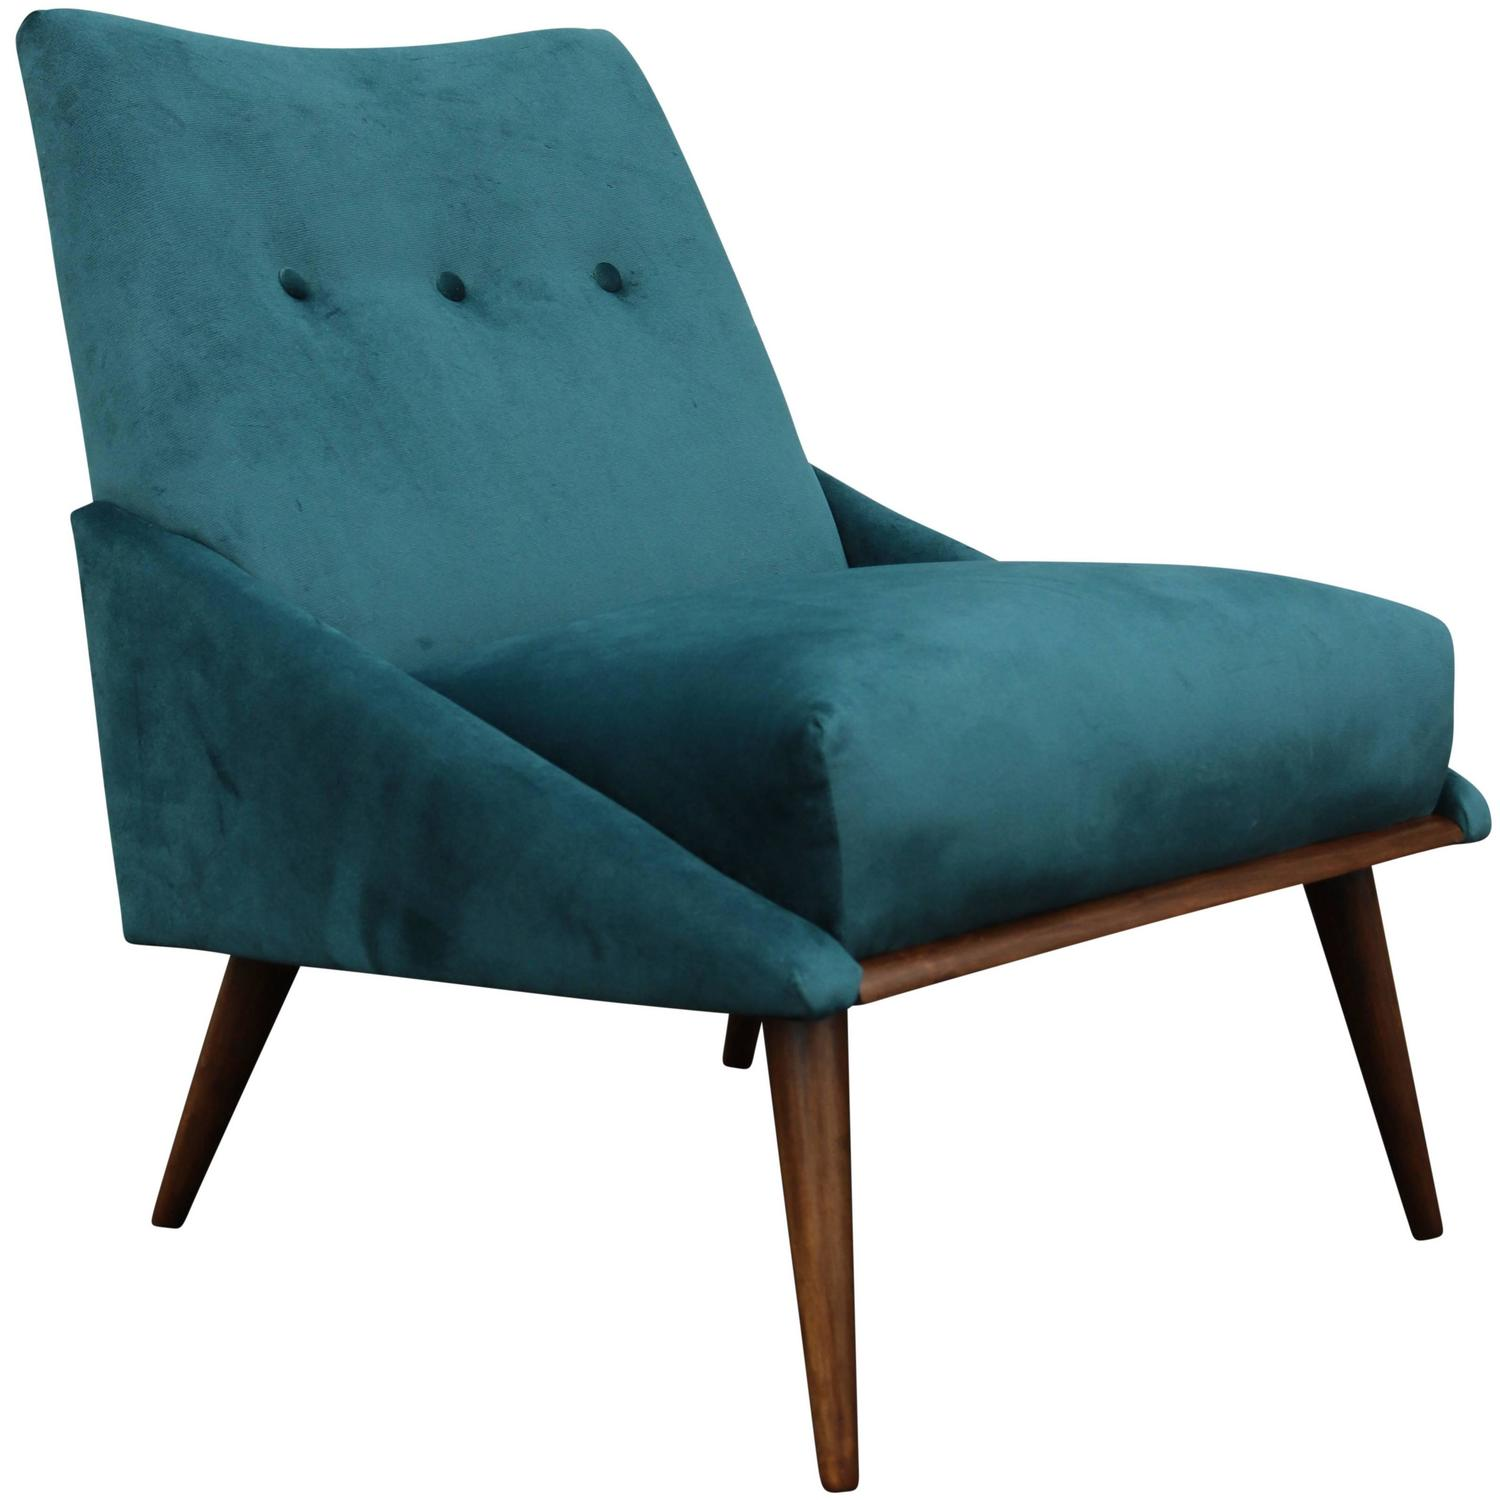 z chair mid century party covers for sale in pretoria peacock velvet modern at 1stdibs